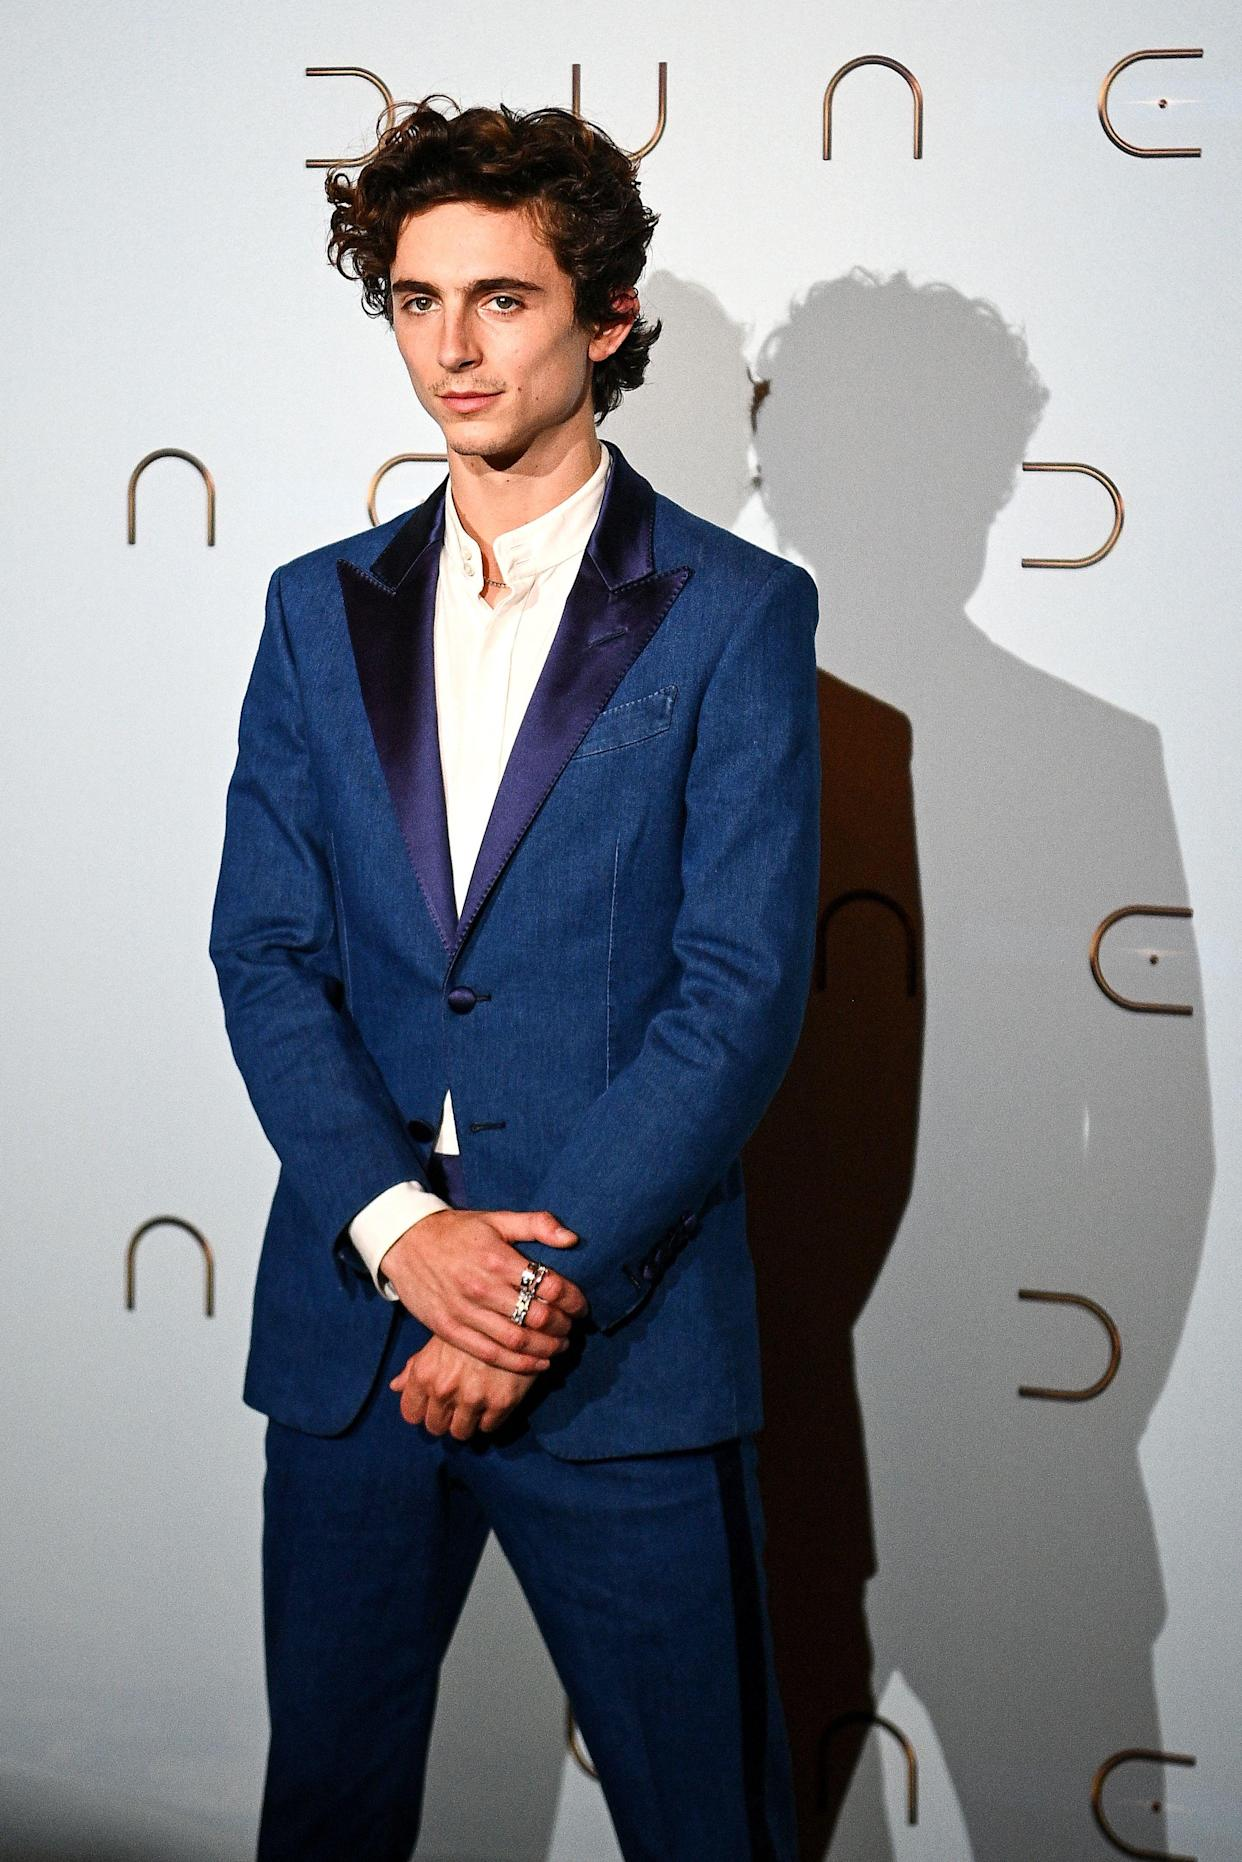 French-American actor Timothee Chalamet poses during a photocall ahead of the avant-premiere of the science-fiction movie